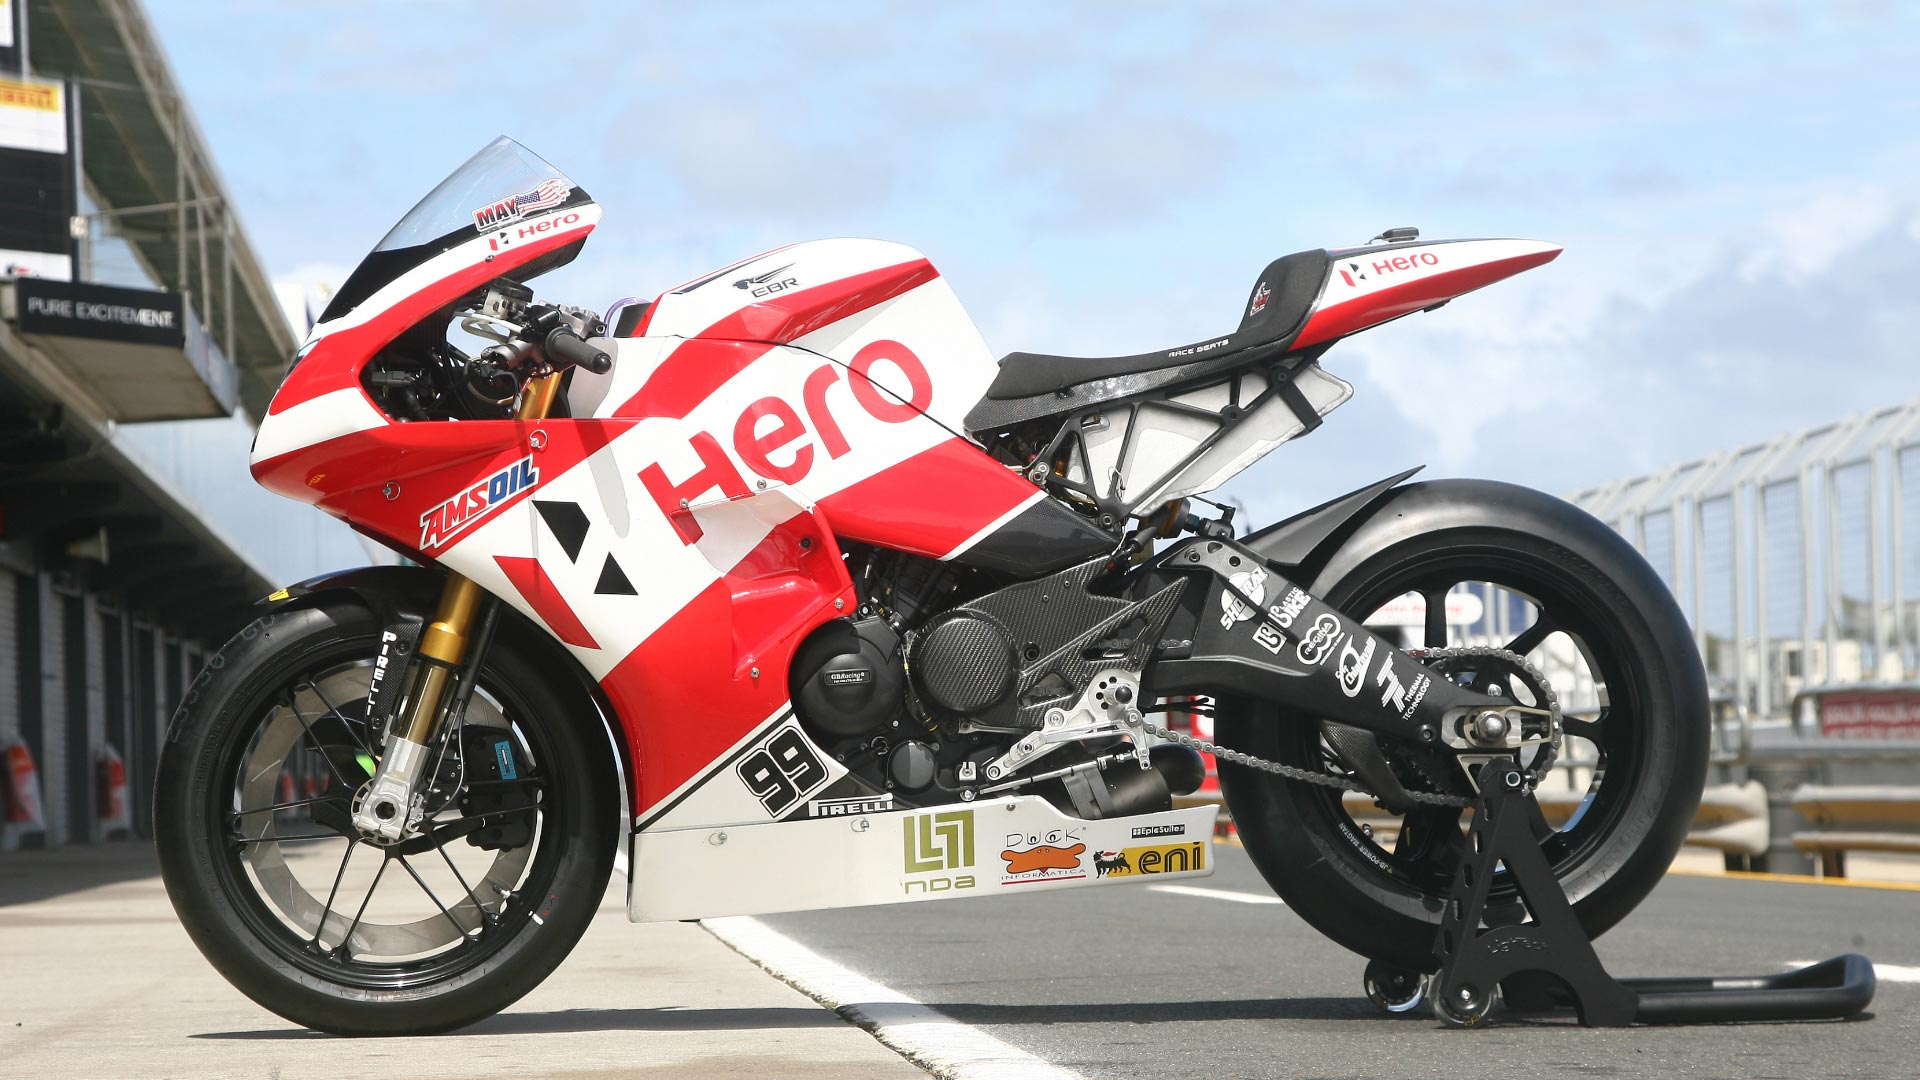 wsbk big changes for team hero ebr in 2015 asphalt rubber. Black Bedroom Furniture Sets. Home Design Ideas